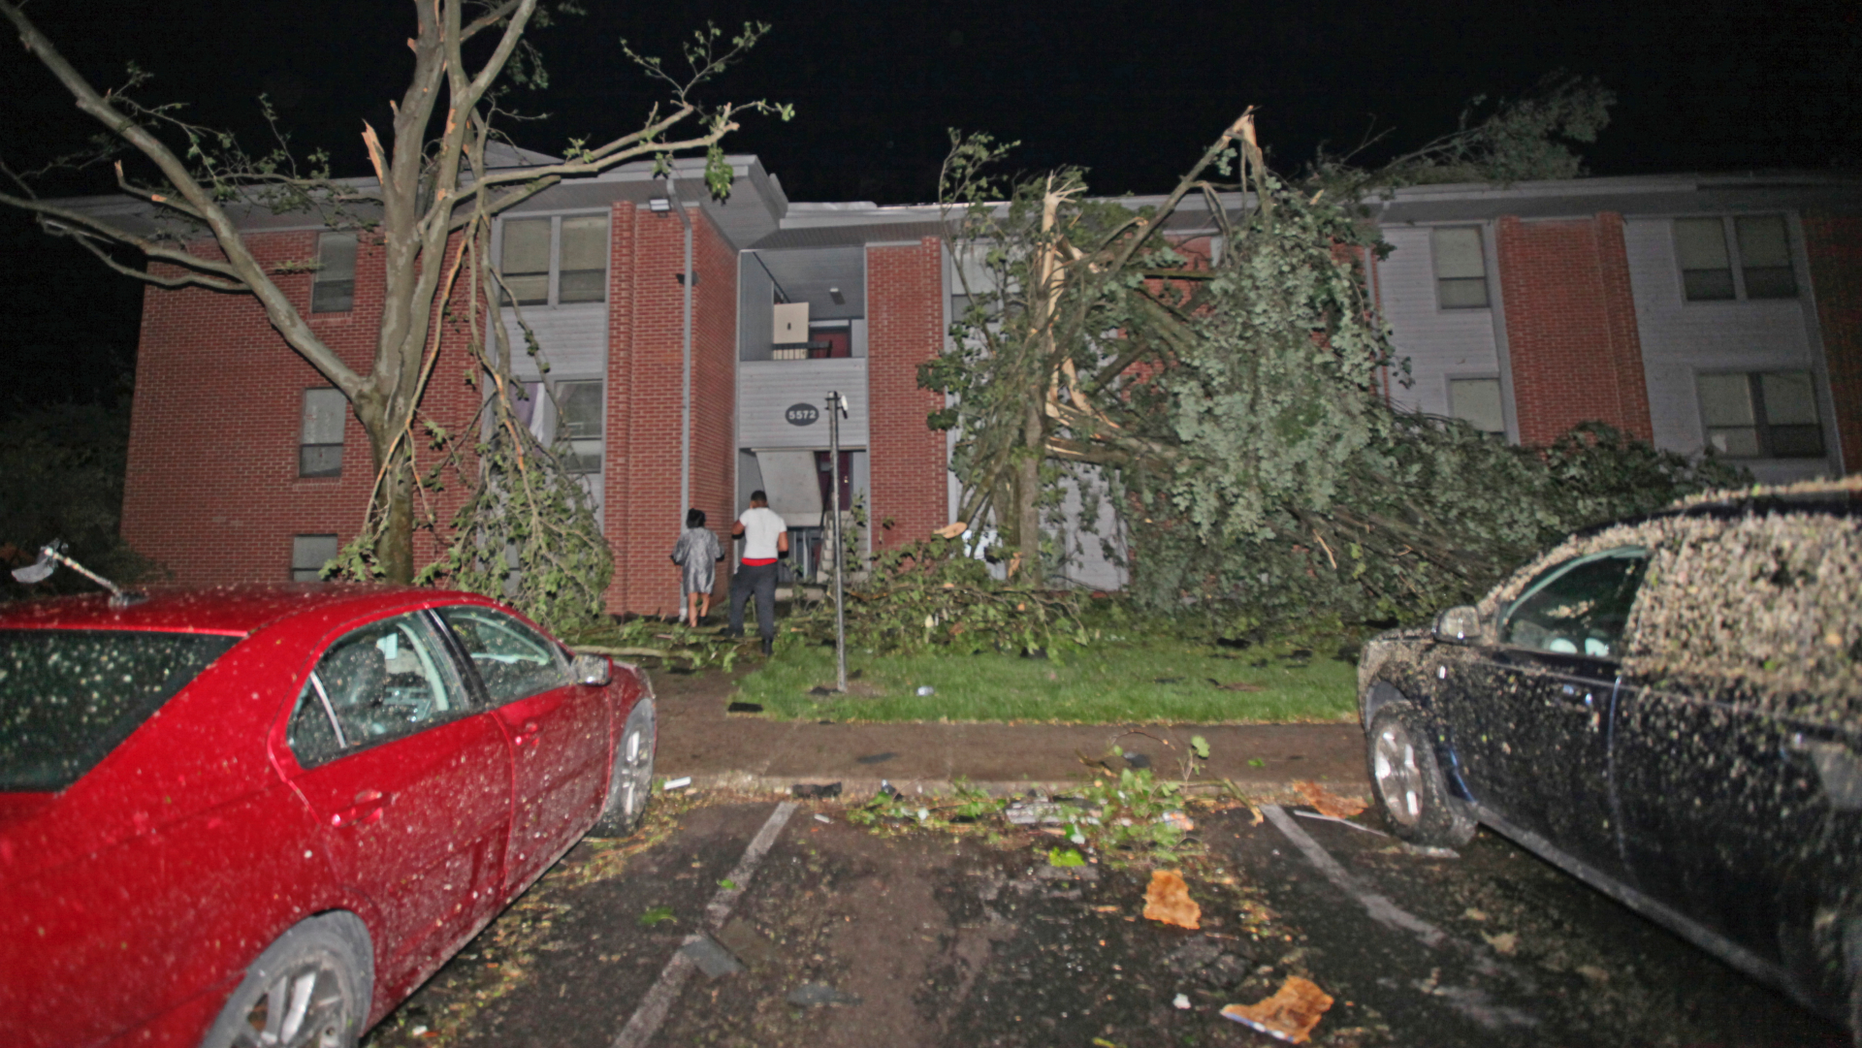 """Residents walk toward their Westbrooke Village Apartment building that was heavily damaged by a tornado Tuesday morning, May 28, 2019, in Dayton, Ohio. The Ohio Department of Transportation is using snow plows to remove debris off an Ohio highway after a """"large and dangerous"""" tornado hit the area late Monday. (Doral Chenoweth III/Columbus Dispatch via AP)"""